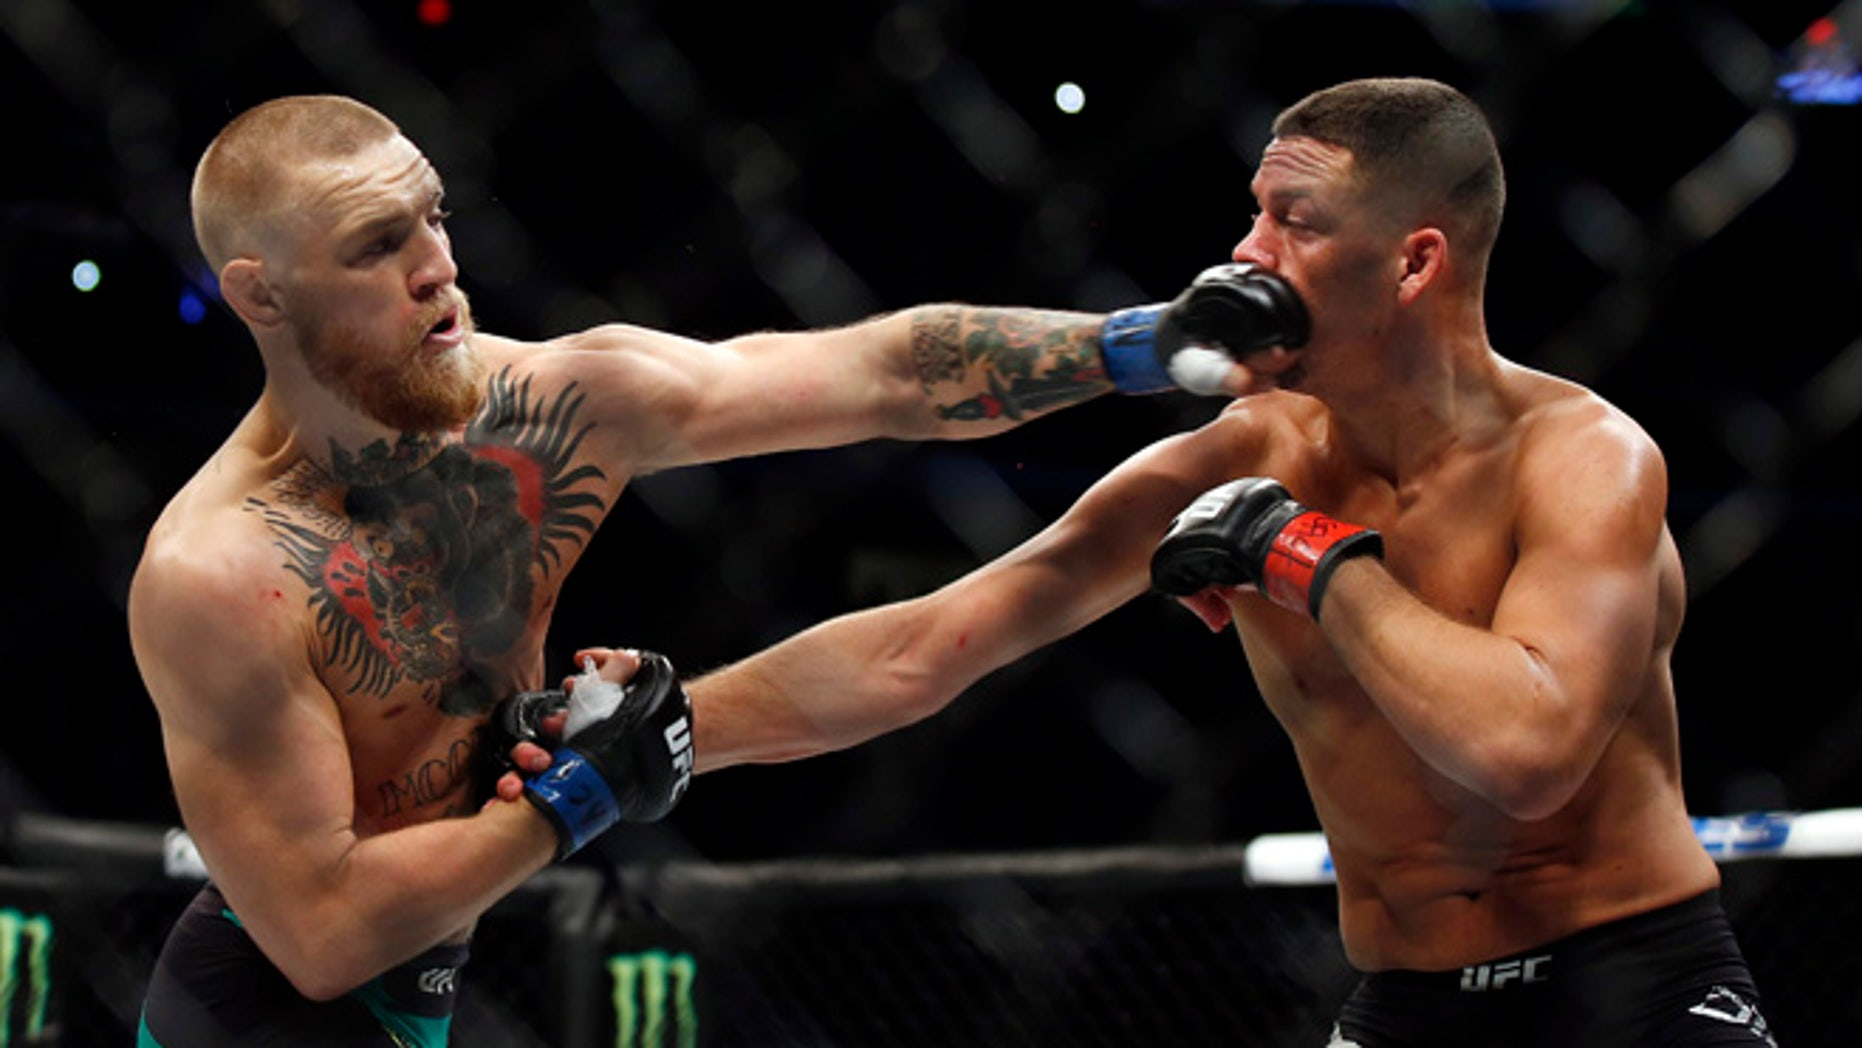 Conor McGregor, left, punches Nate Diaz during their welterweight mixed martial arts bout at UFC 202 on Saturday, Aug. 20, 2016, in Las Vegas. McGregor won by split decision. (AP Photo/Isaac Brekken)